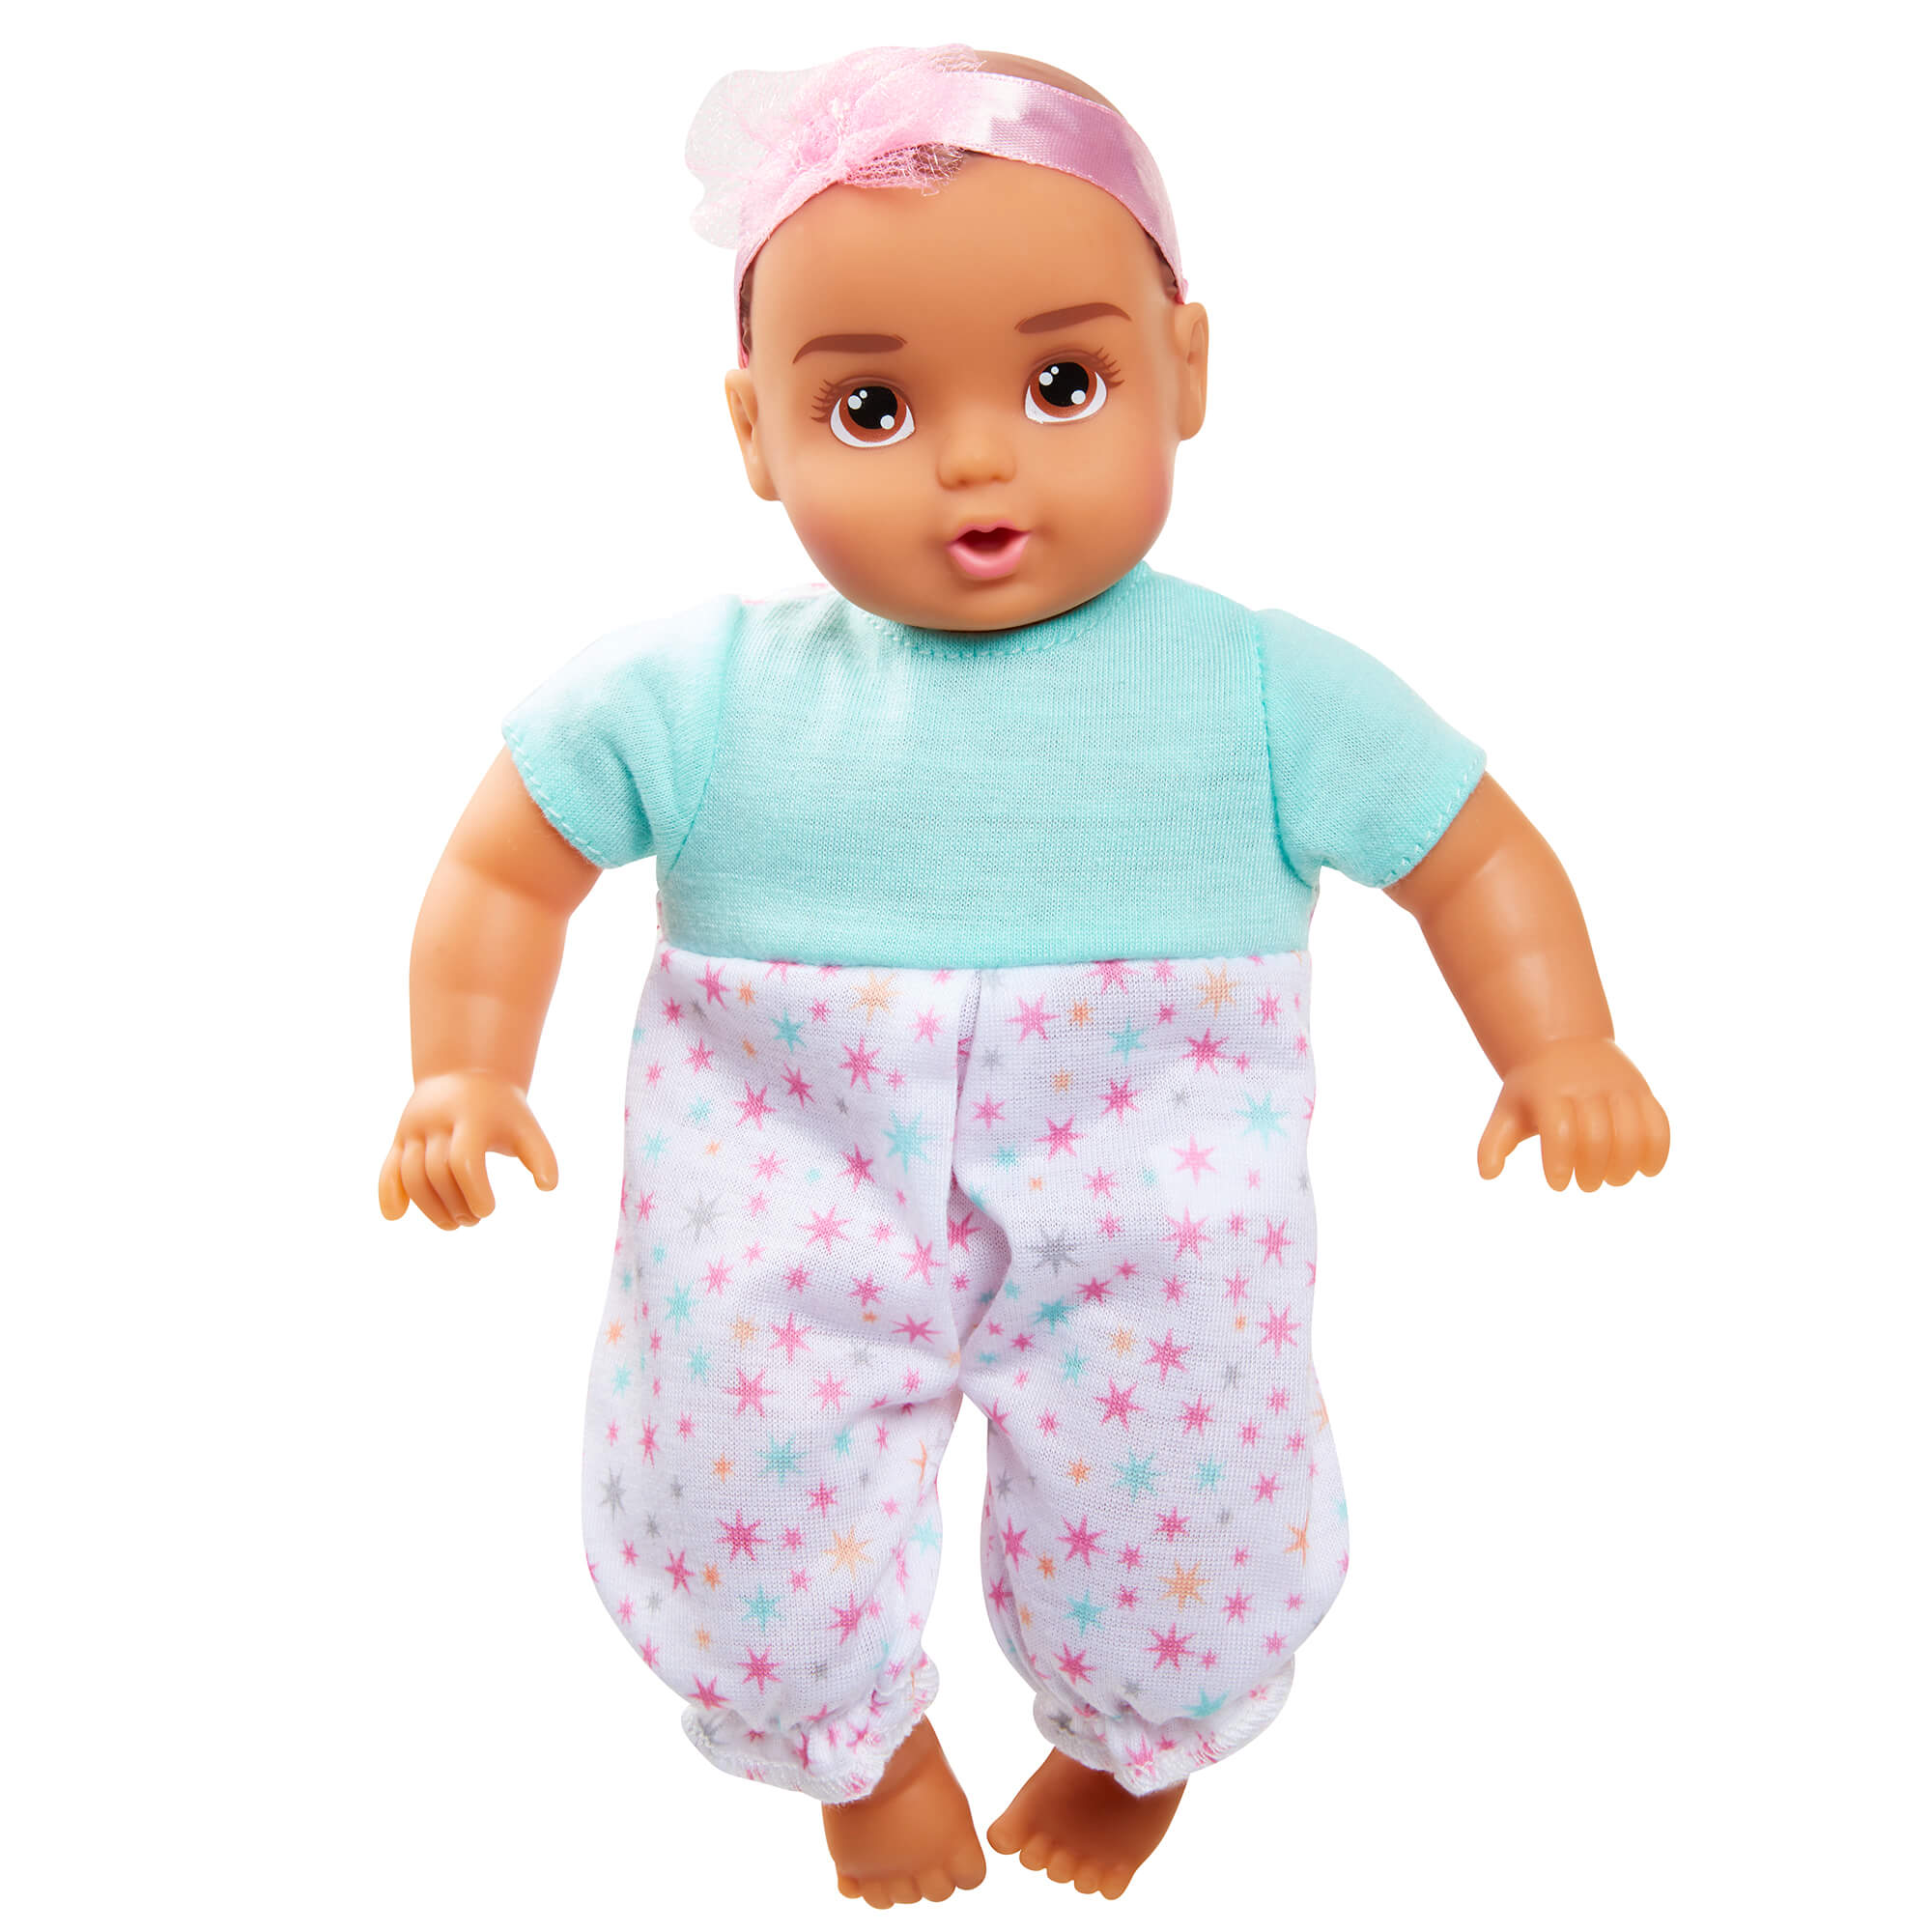 Perfectly Cute Baby 8 inch My Lil' Baby Girl Doll